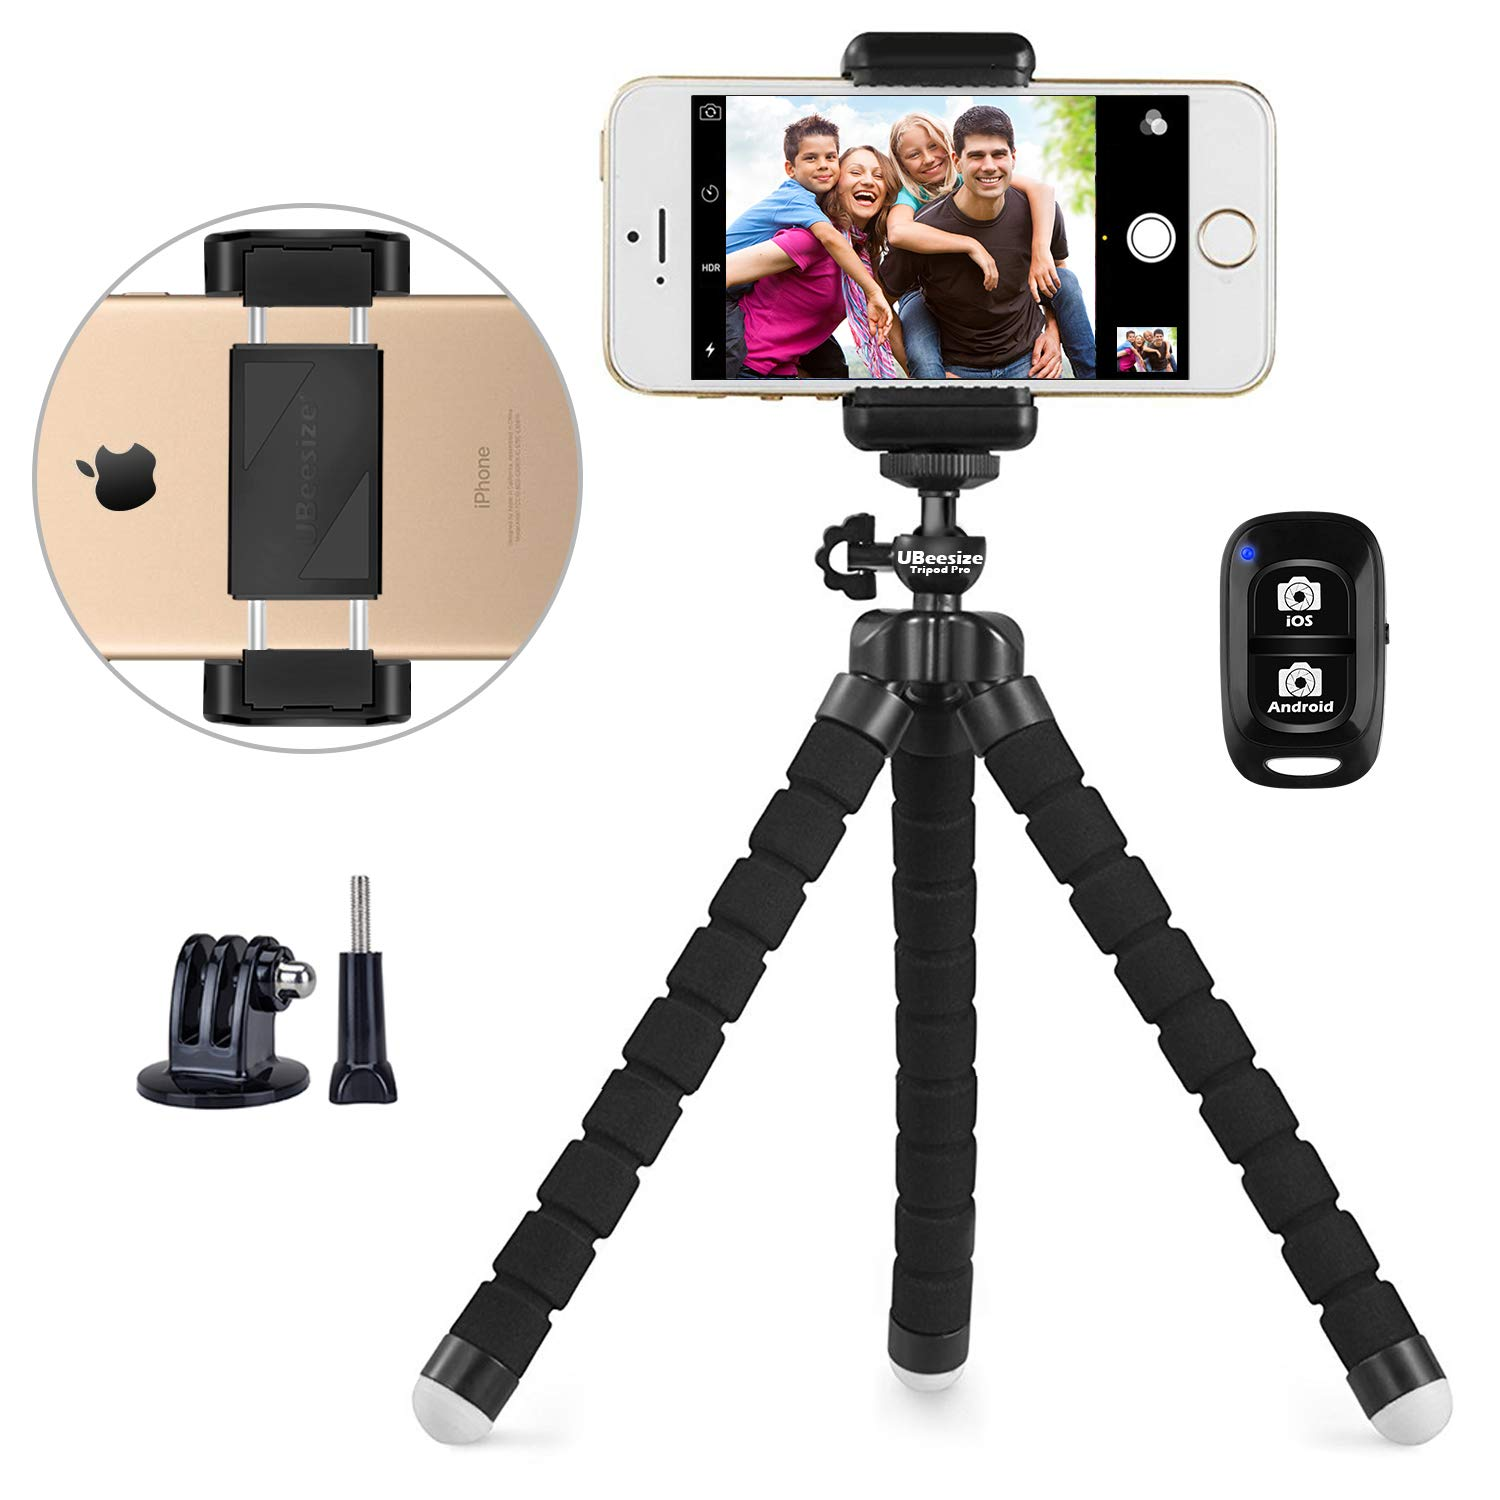 UBeesize Selfie Stick with Portable and Adjustable Camera Stand Holder